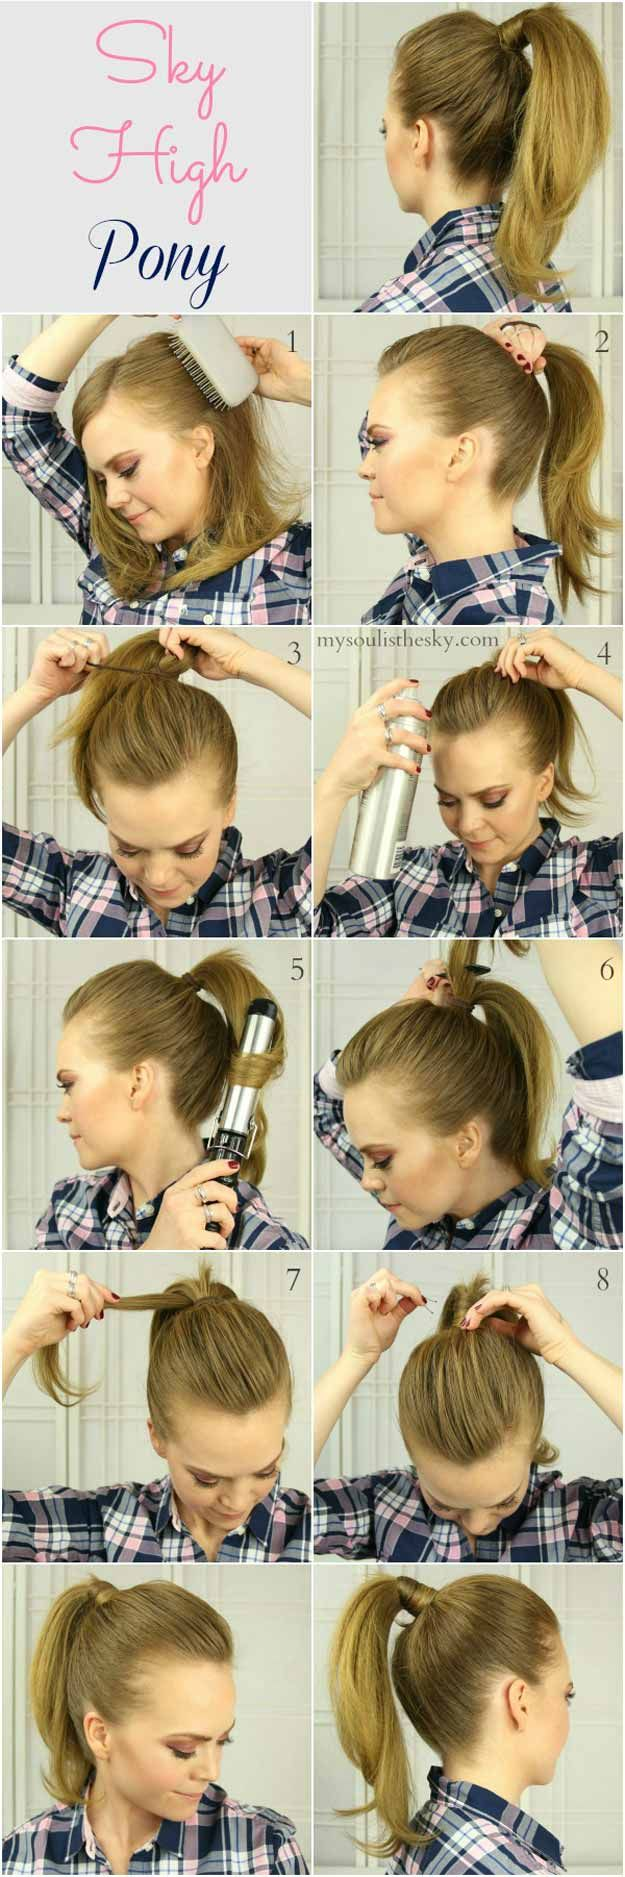 Best 5 Minute Hairstyles - High Ponytail Hack - Quick And Easy Hairstyles and Haircuts For Long Hair, That Are Super Simple and Great For Busy Mornings Or For School. Braids, Undo's, Ponytail Looks And Hair Styles For Short Hair, Medium Length Hair, And Long Hair. Step By Step Tutorials, Tips, And Hacks For Teens, For Kids, And For Wet And Dry Hair. Great Looks For Curls, Simple And Cute Braids With Half Up Half Down Hairstyles. Five Minute Looks For Church, For Shoulder Length Hair, For…